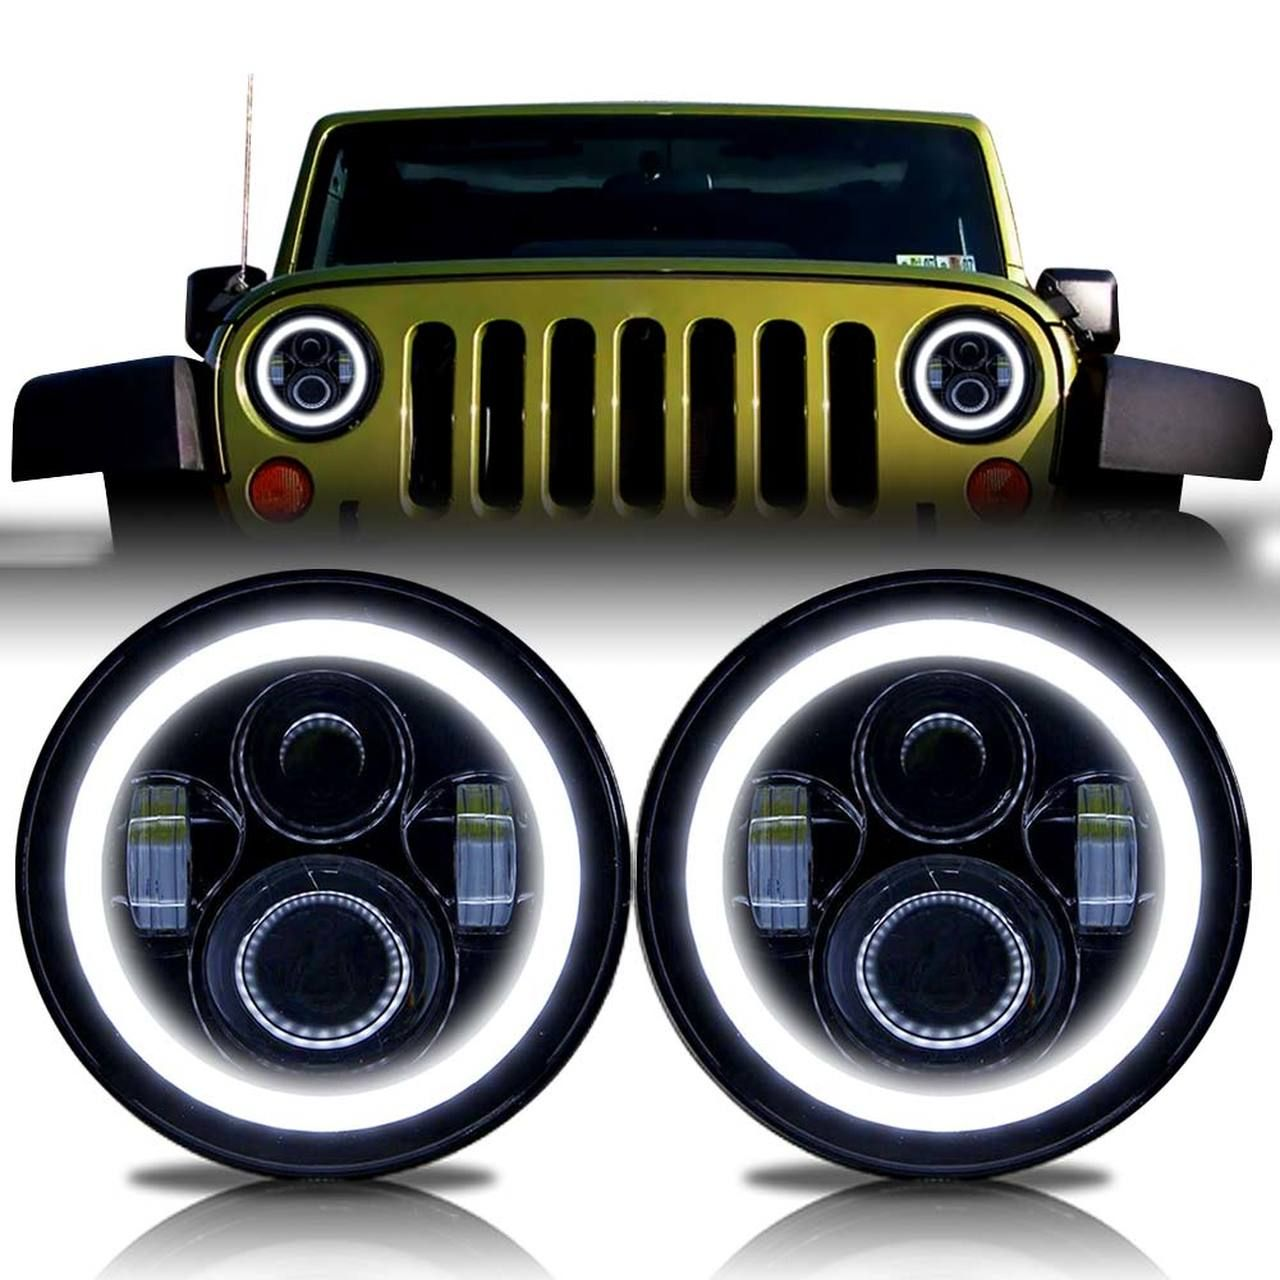 Halo Projector Black Led Headlights For Wrangler 1996 2018 Jeep